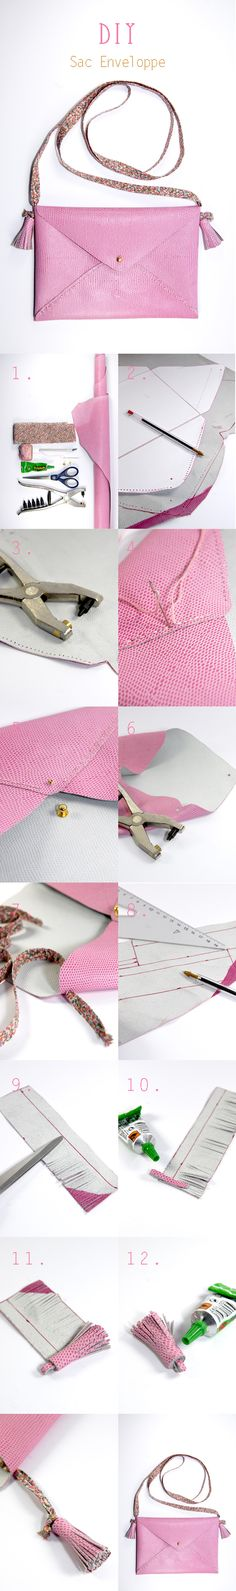 DIY tuto sac enveloppe en cuir- leather envelope bag